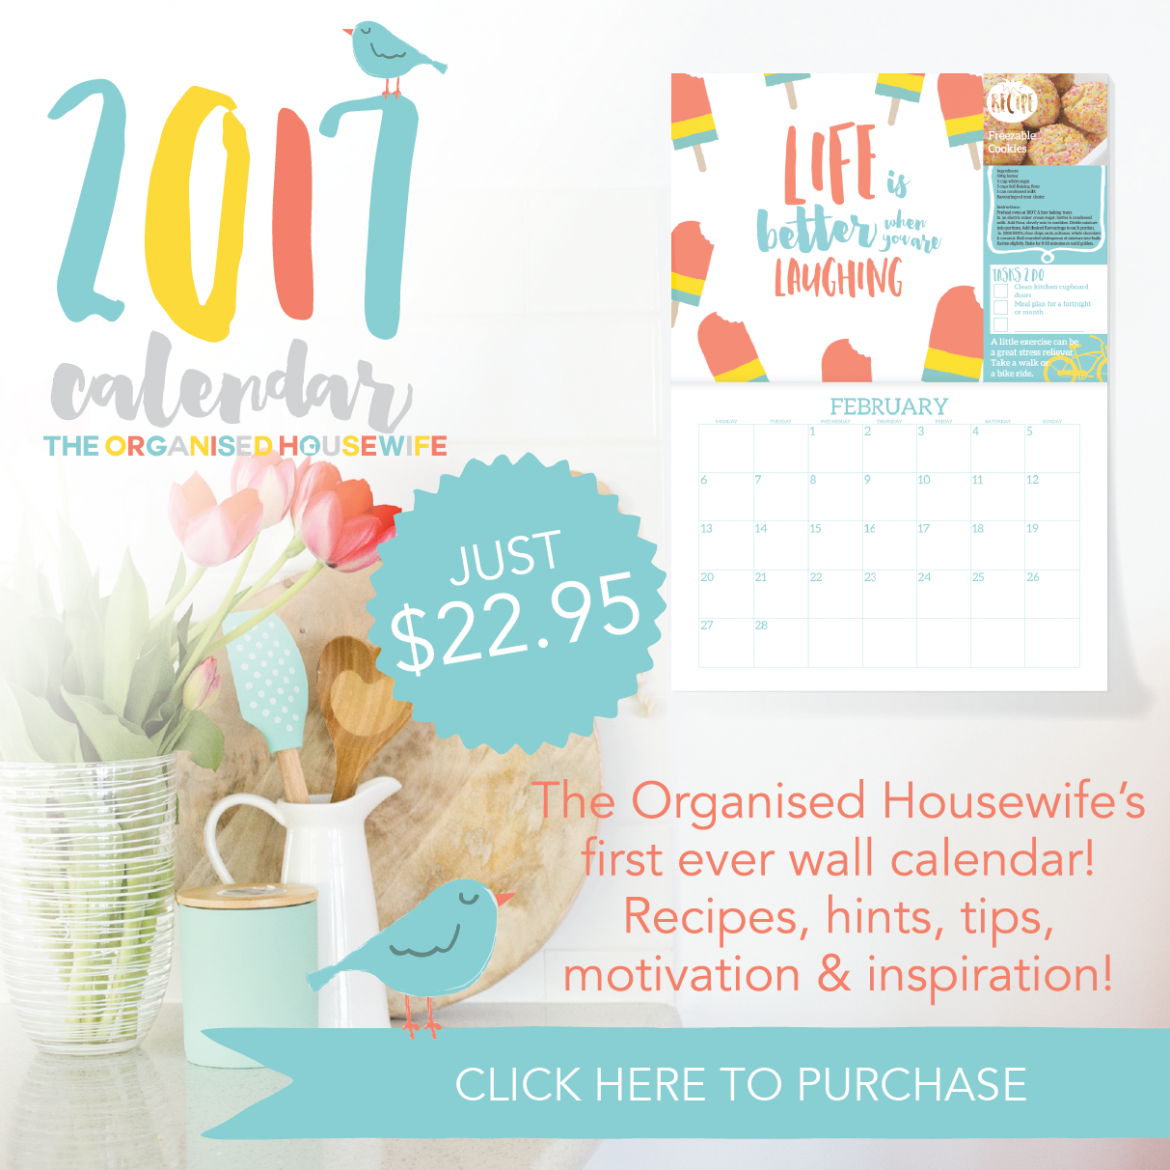 MY THE ORGANISED HOUSEWIFE 2017 CALENDAR –The theme for 2017 is inspiring and vibrant, because being organised shouldn't be boring! The 2017 calendar is full of bright and colourful designs to inspire and motivate you. I want you to look at the calendar and feel encouraged to achieve new things! Each month has a unique feel and features fun and quirky graphics